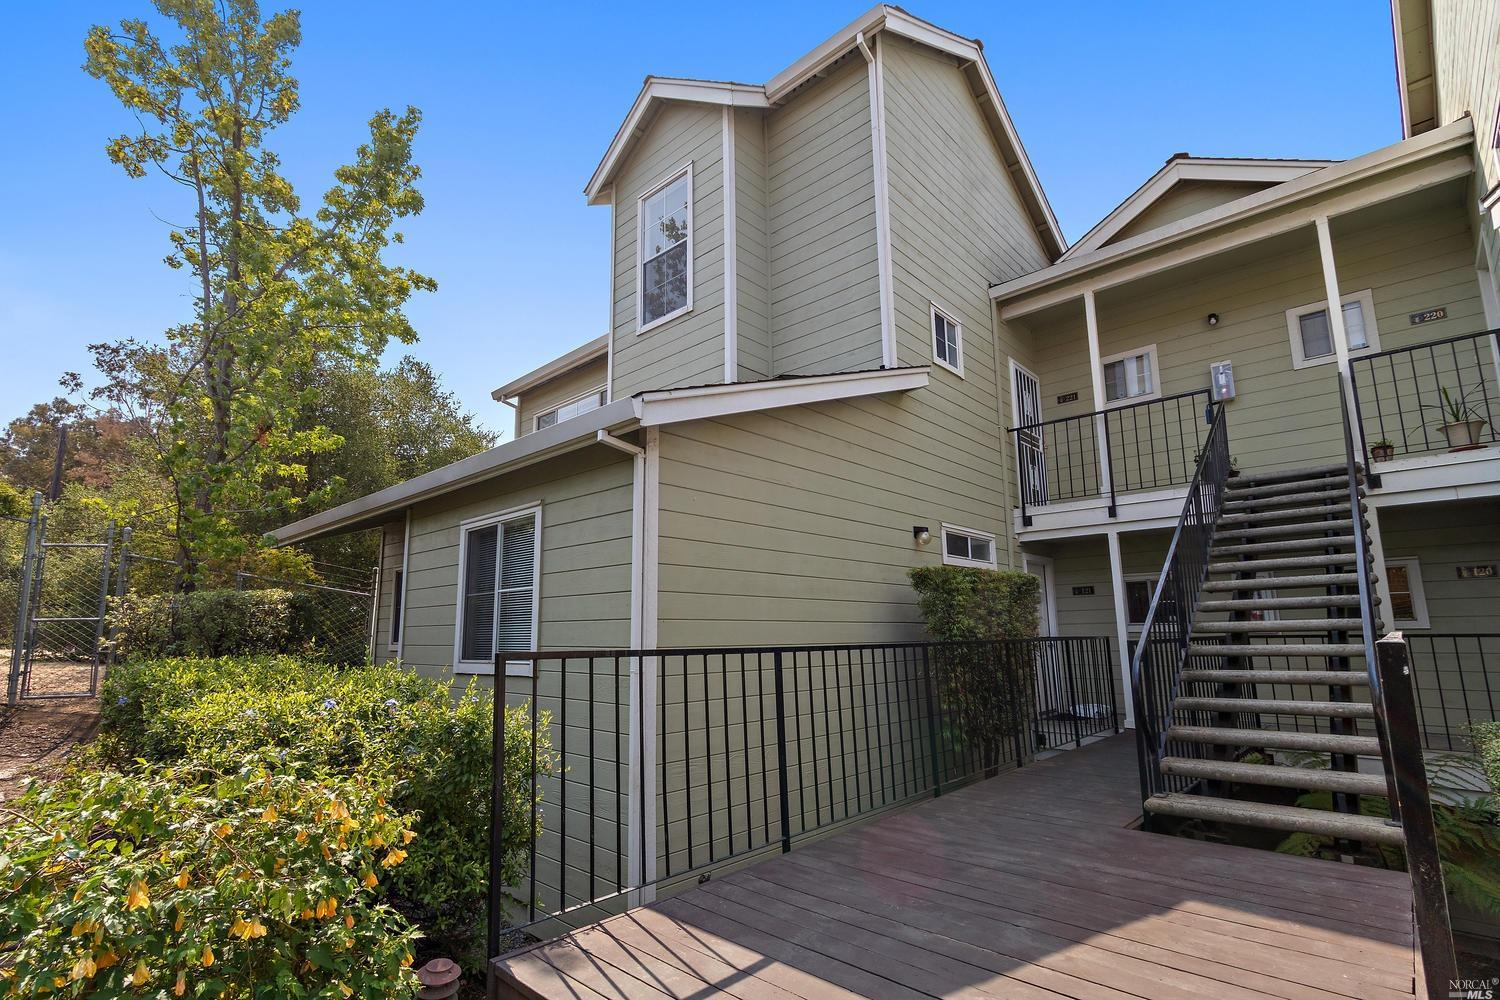 Welcome Home to your Water View retreat. Benicia by The Bay, gateway to The Napa Valley Wine Country, one of the Bay Area's hidden treasures. This one bedroom end unit, upper level home hosts a loft that functions as the master or a cozy guest bedroom. Walking distance to the creative arts community, shoreline, Marina, downtown restaurants & Farmers Market. Enjoy a less stressful place to live and to work... if you must. Your own spa and gym are right at home. Open concept, plenty of light, stainless appliances, vaulted ceiling, and a fireplace to warm yourself on a cool evening offer all of the comforts you will ever want. Easy access to all places in Nor Cal and the SF Bay Area. Imagine yourself relaxing, morning cup of tea & your favorit